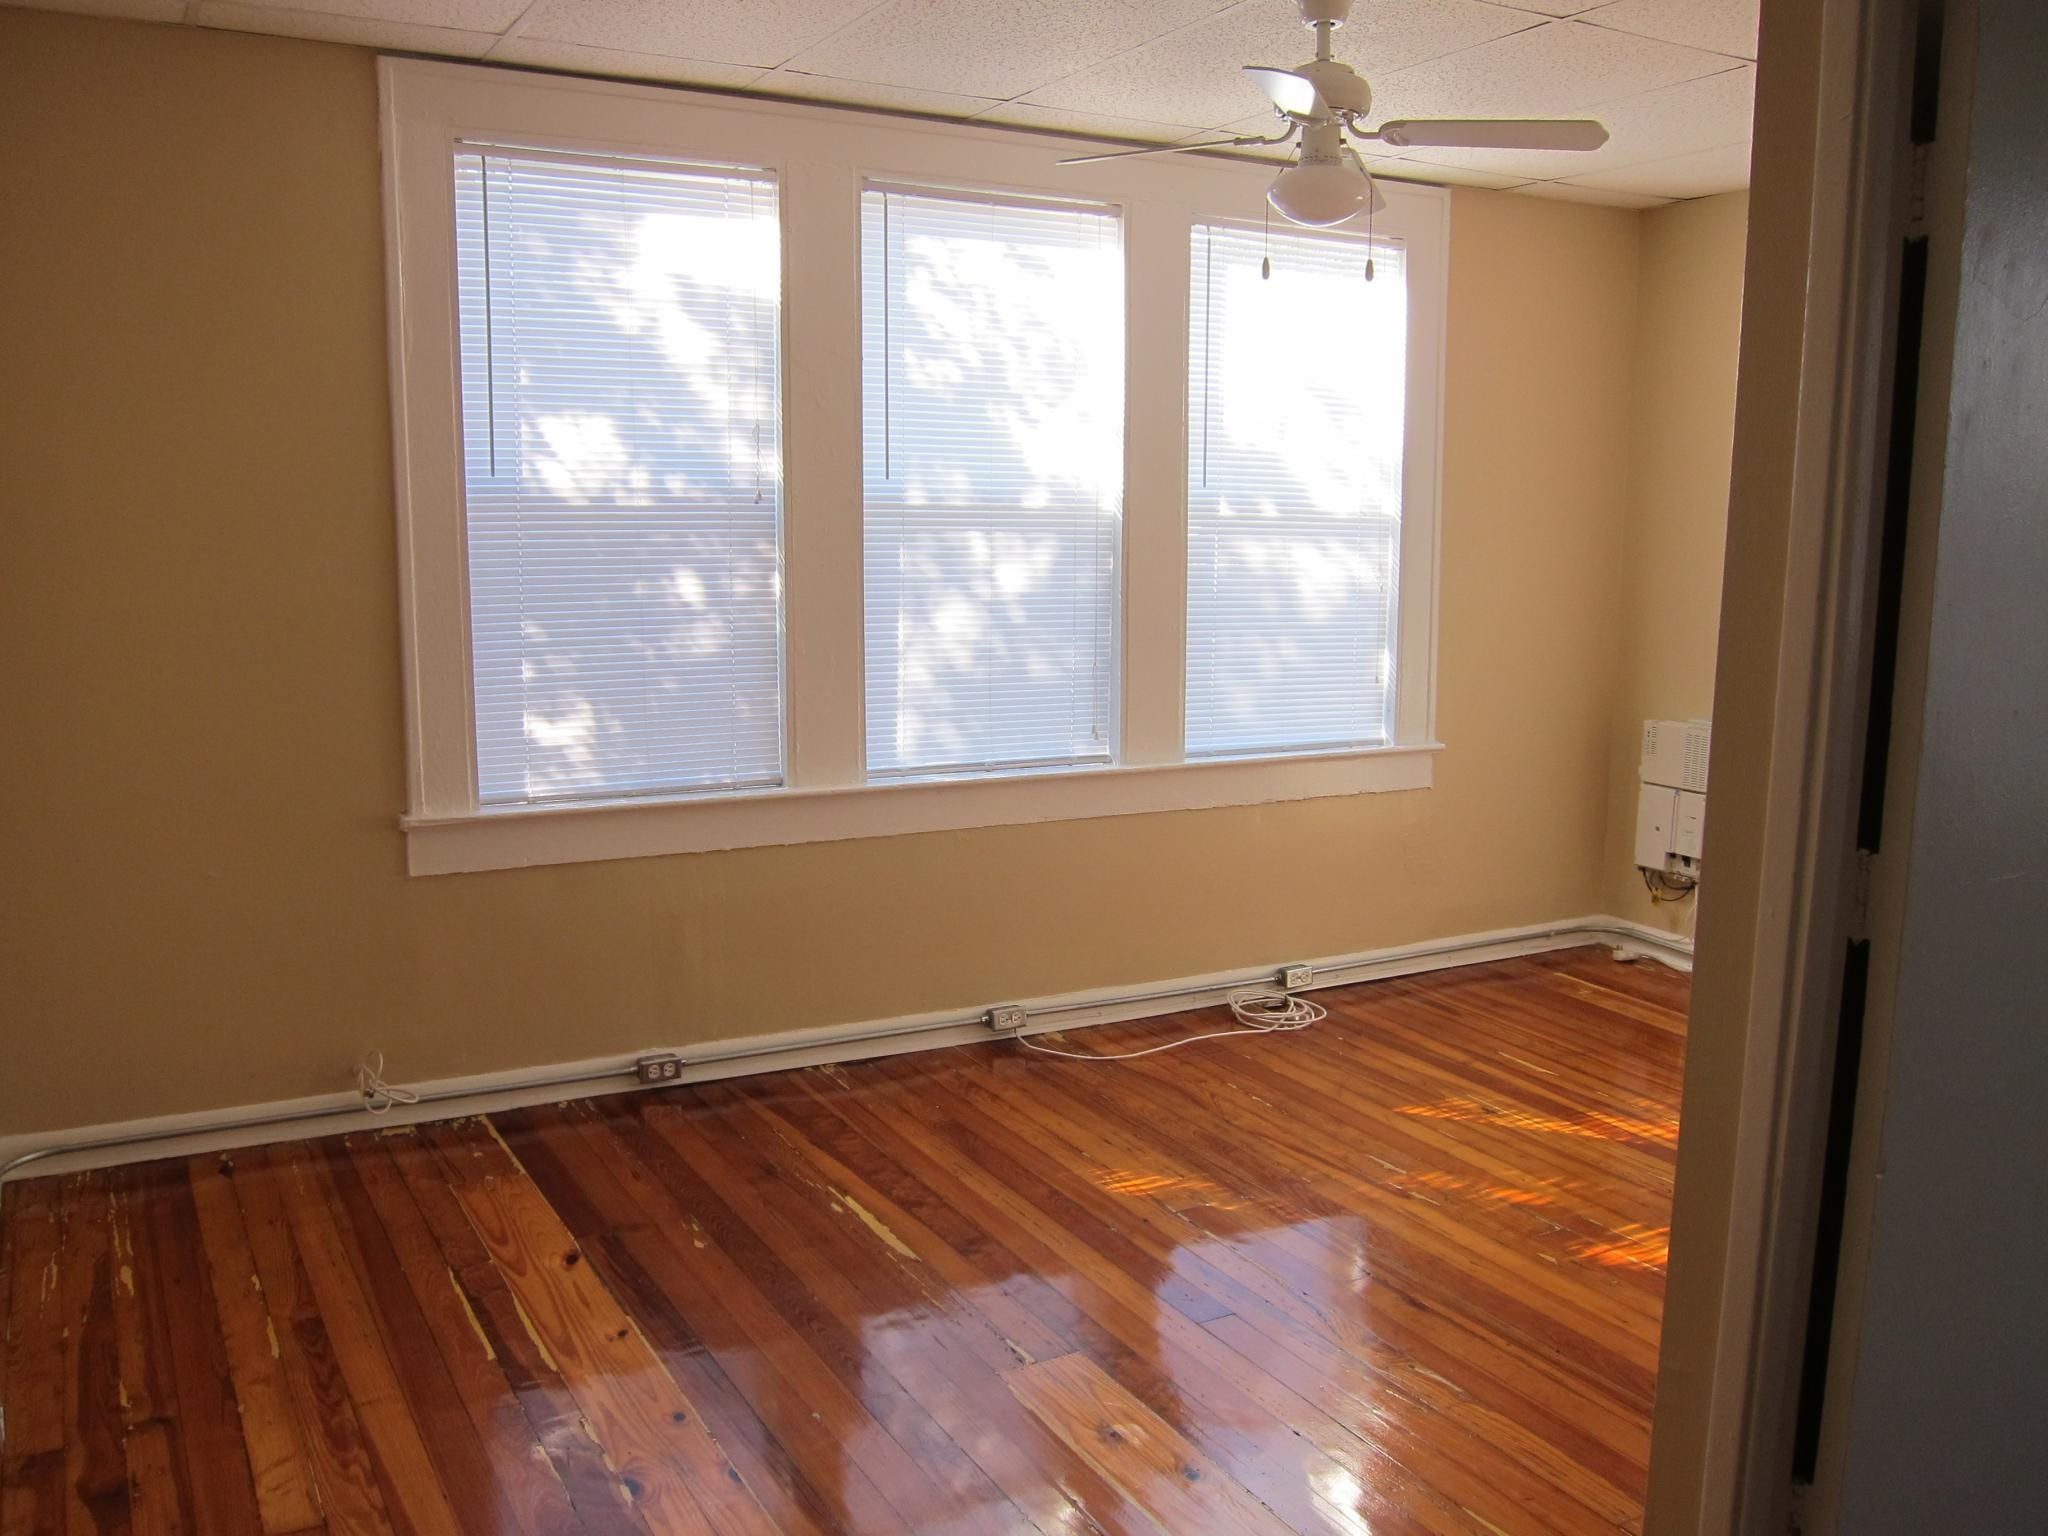 304 N Westland Ave For Rent - Tampa, FL   Trulia